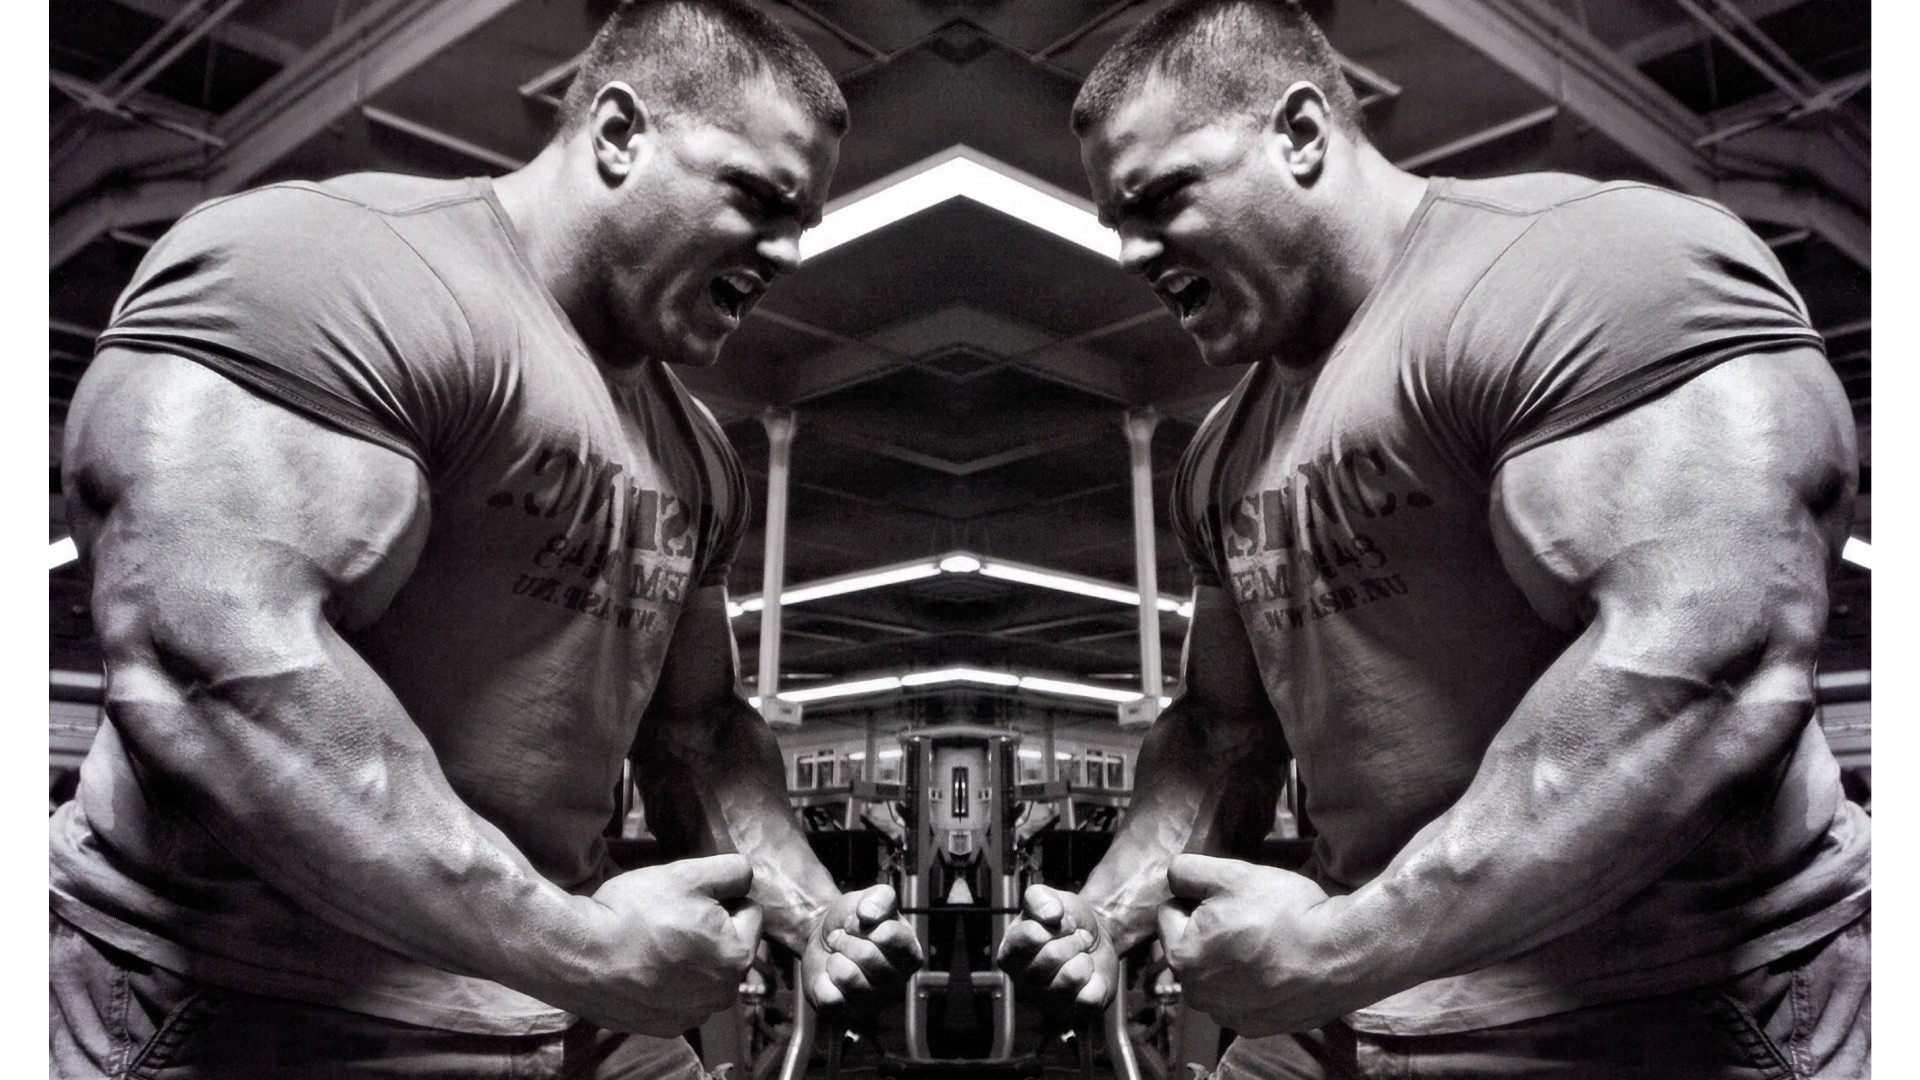 Collection of Bodybuilder Wallpaper on HDWallpapers 1920×1200 Wallpapers  Bodybuilding (58 Wallpapers)  